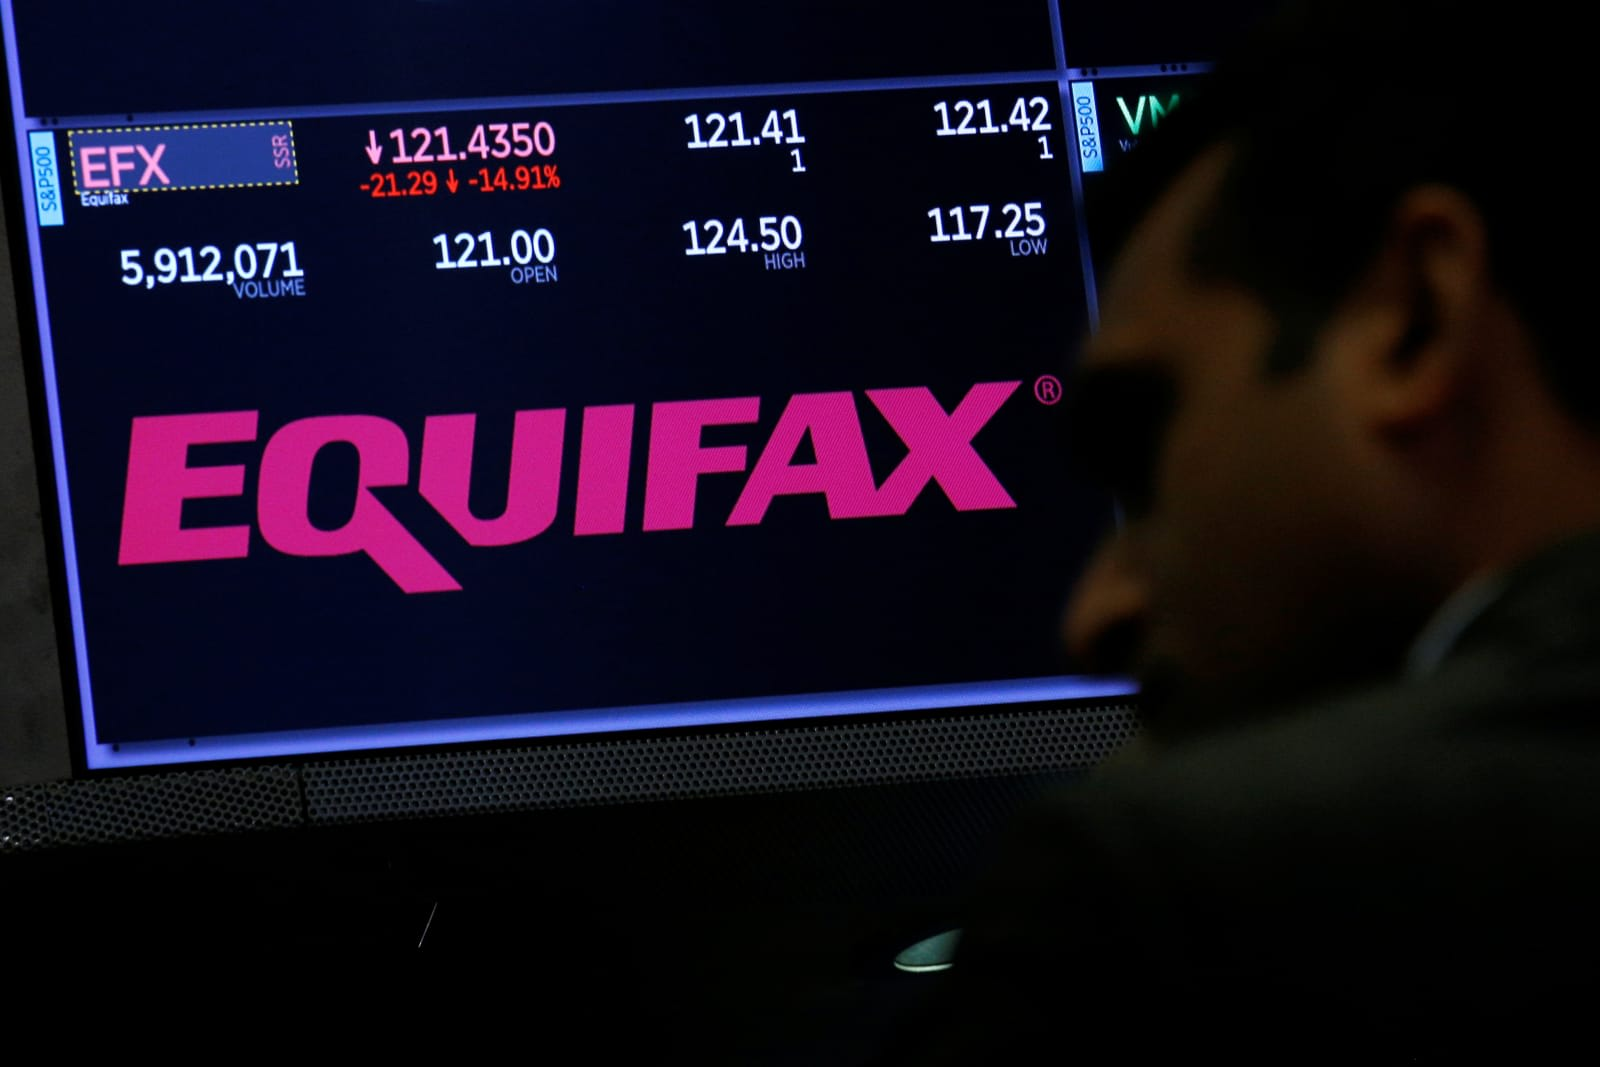 Equifax breach shows signs of a possible state-sponsored hack